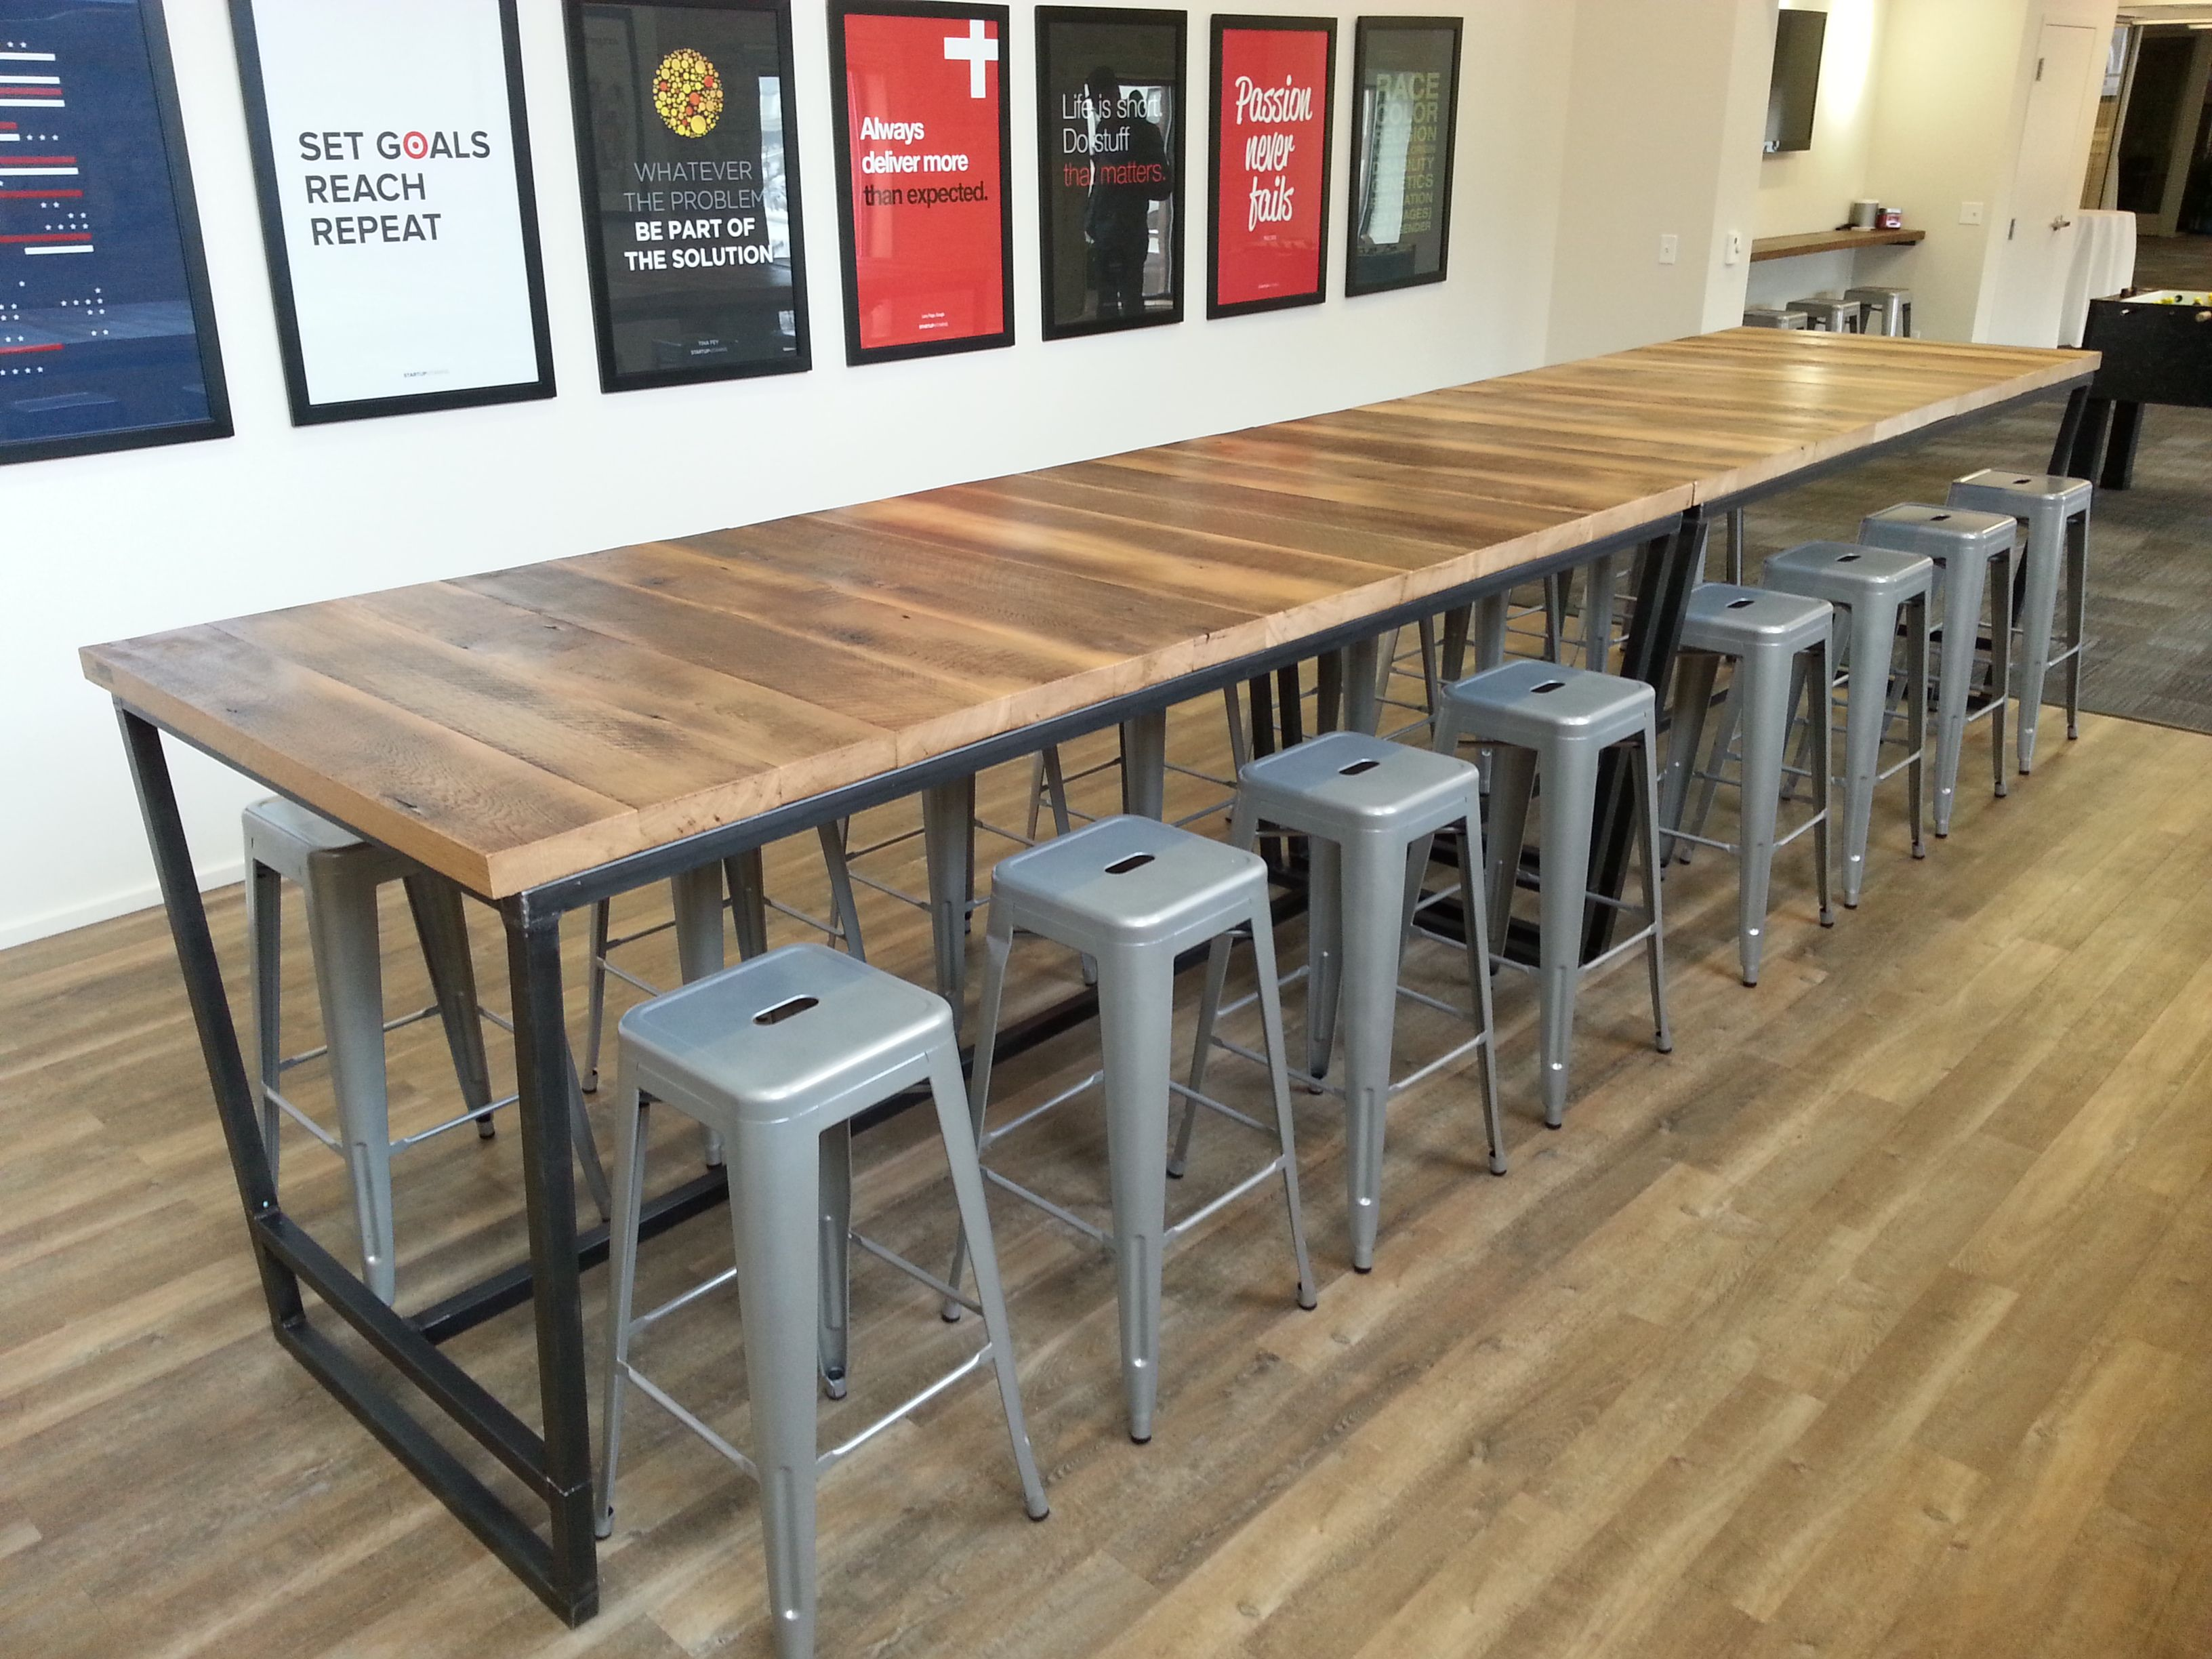 ... Made Reclaimed Wood And Steel Industrial High Top Conference Table